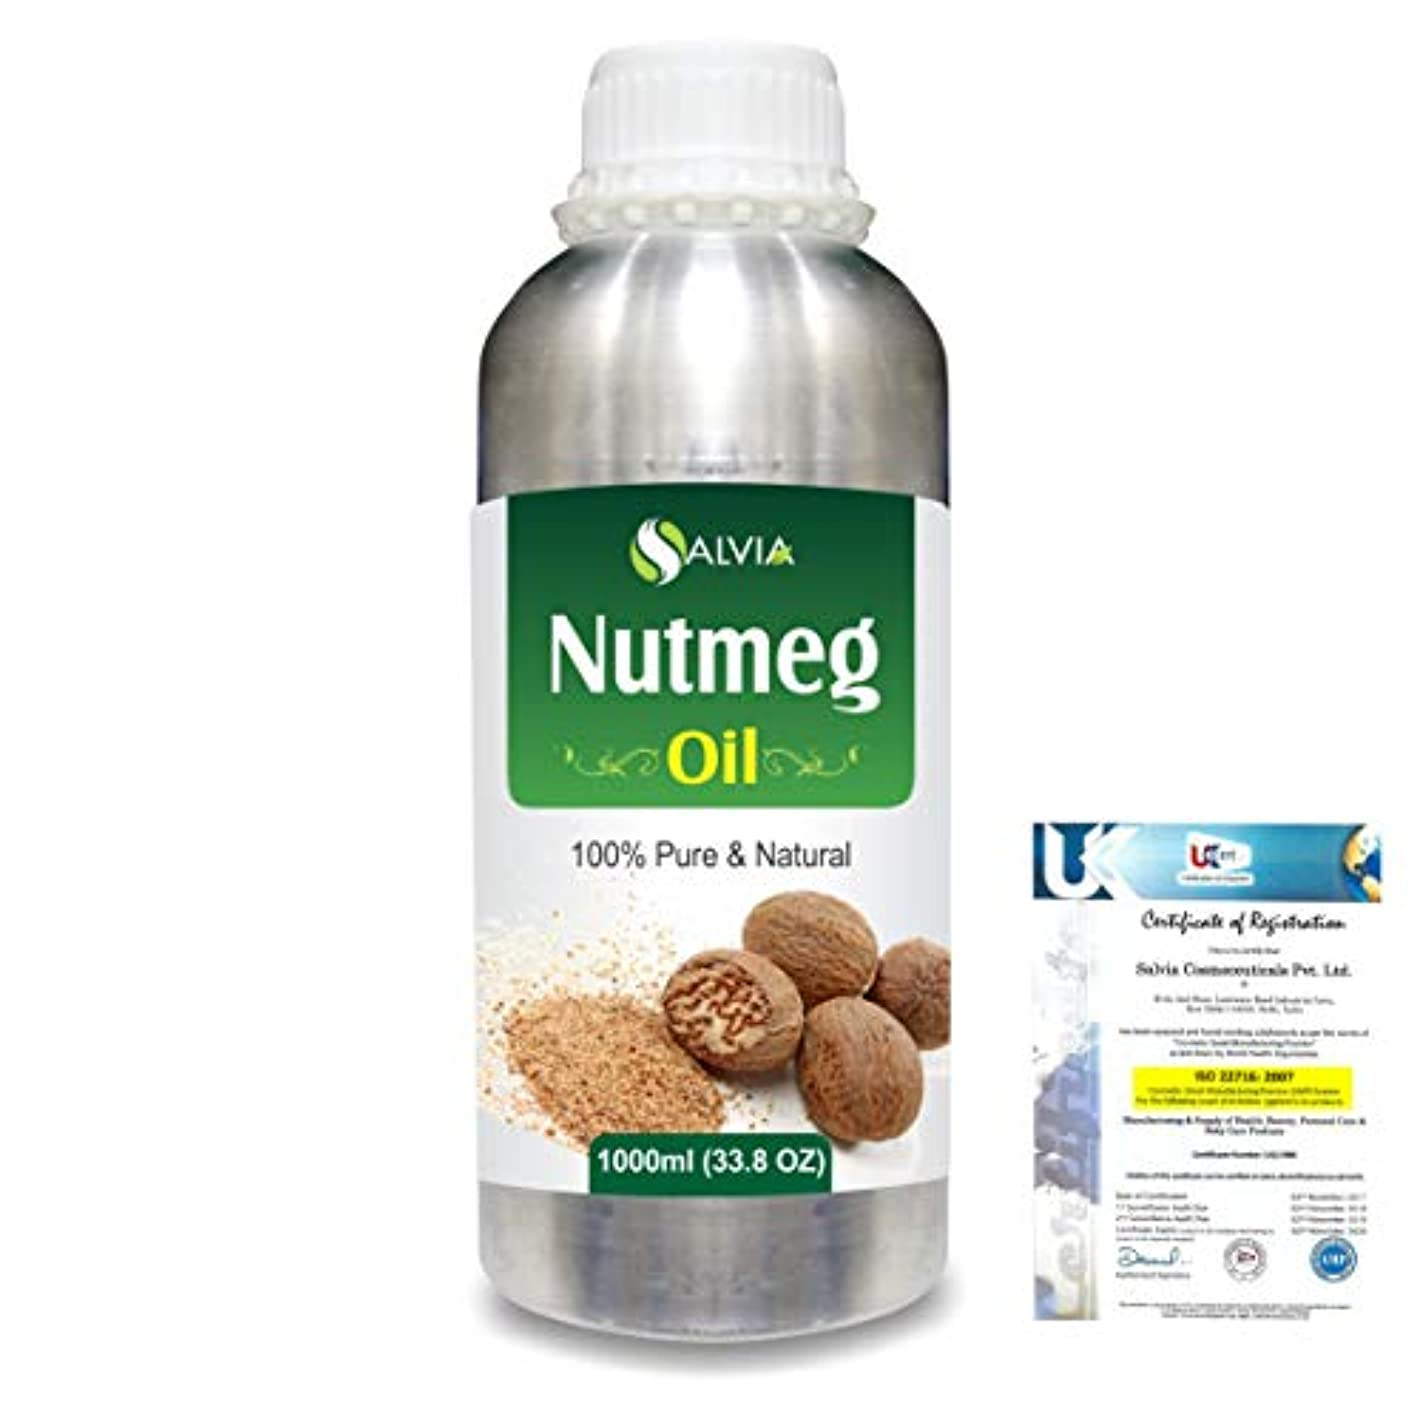 Nutmeg (Myristica fragrans) 100% Natural Pure Essential Oil 1000ml/33.8fl.oz.